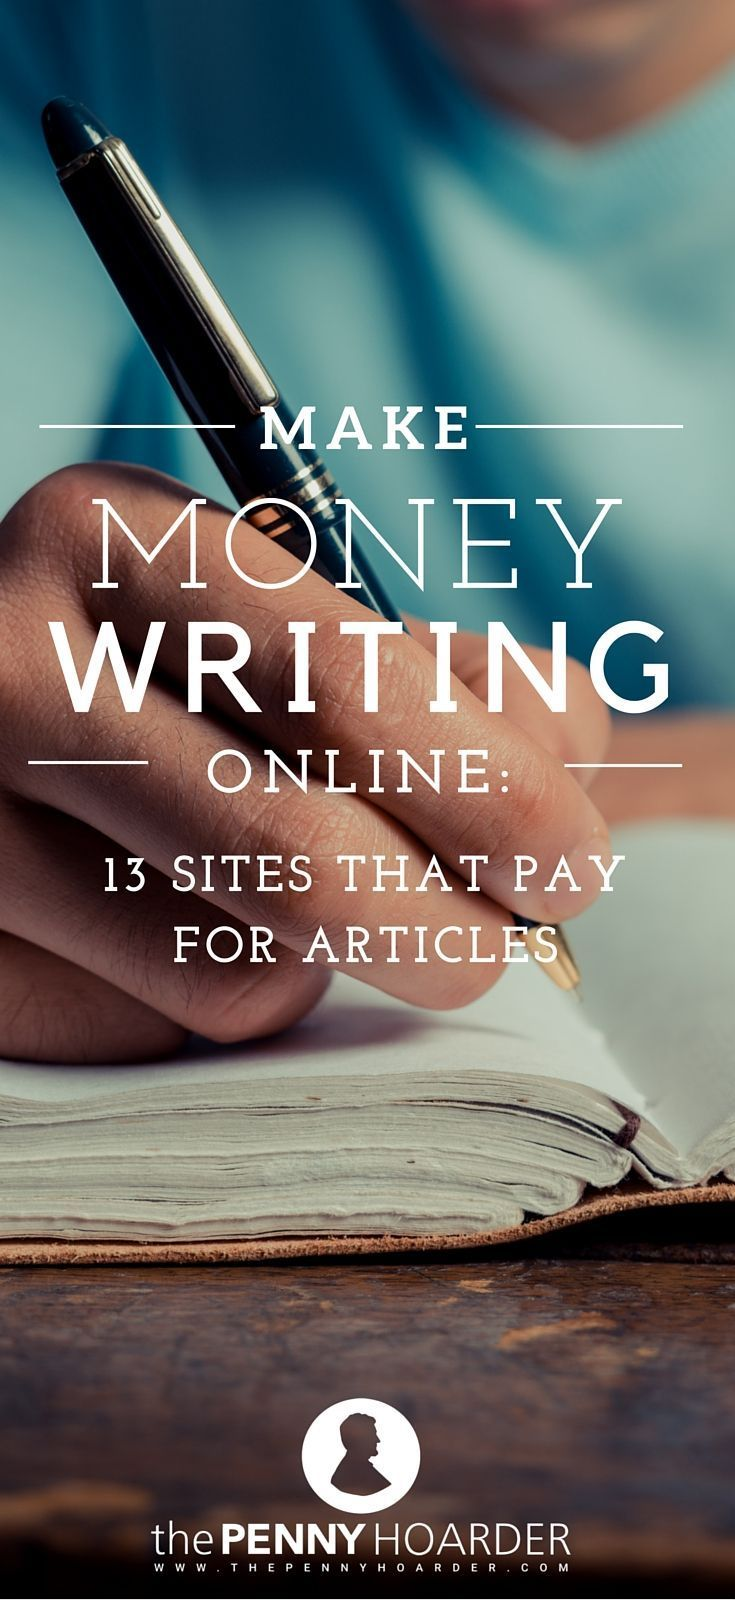 best images about unique jobs work from home want to get paid to write we ve put together a quick list of sites that pay for articles from those that pay pennies per click to the more lucrative